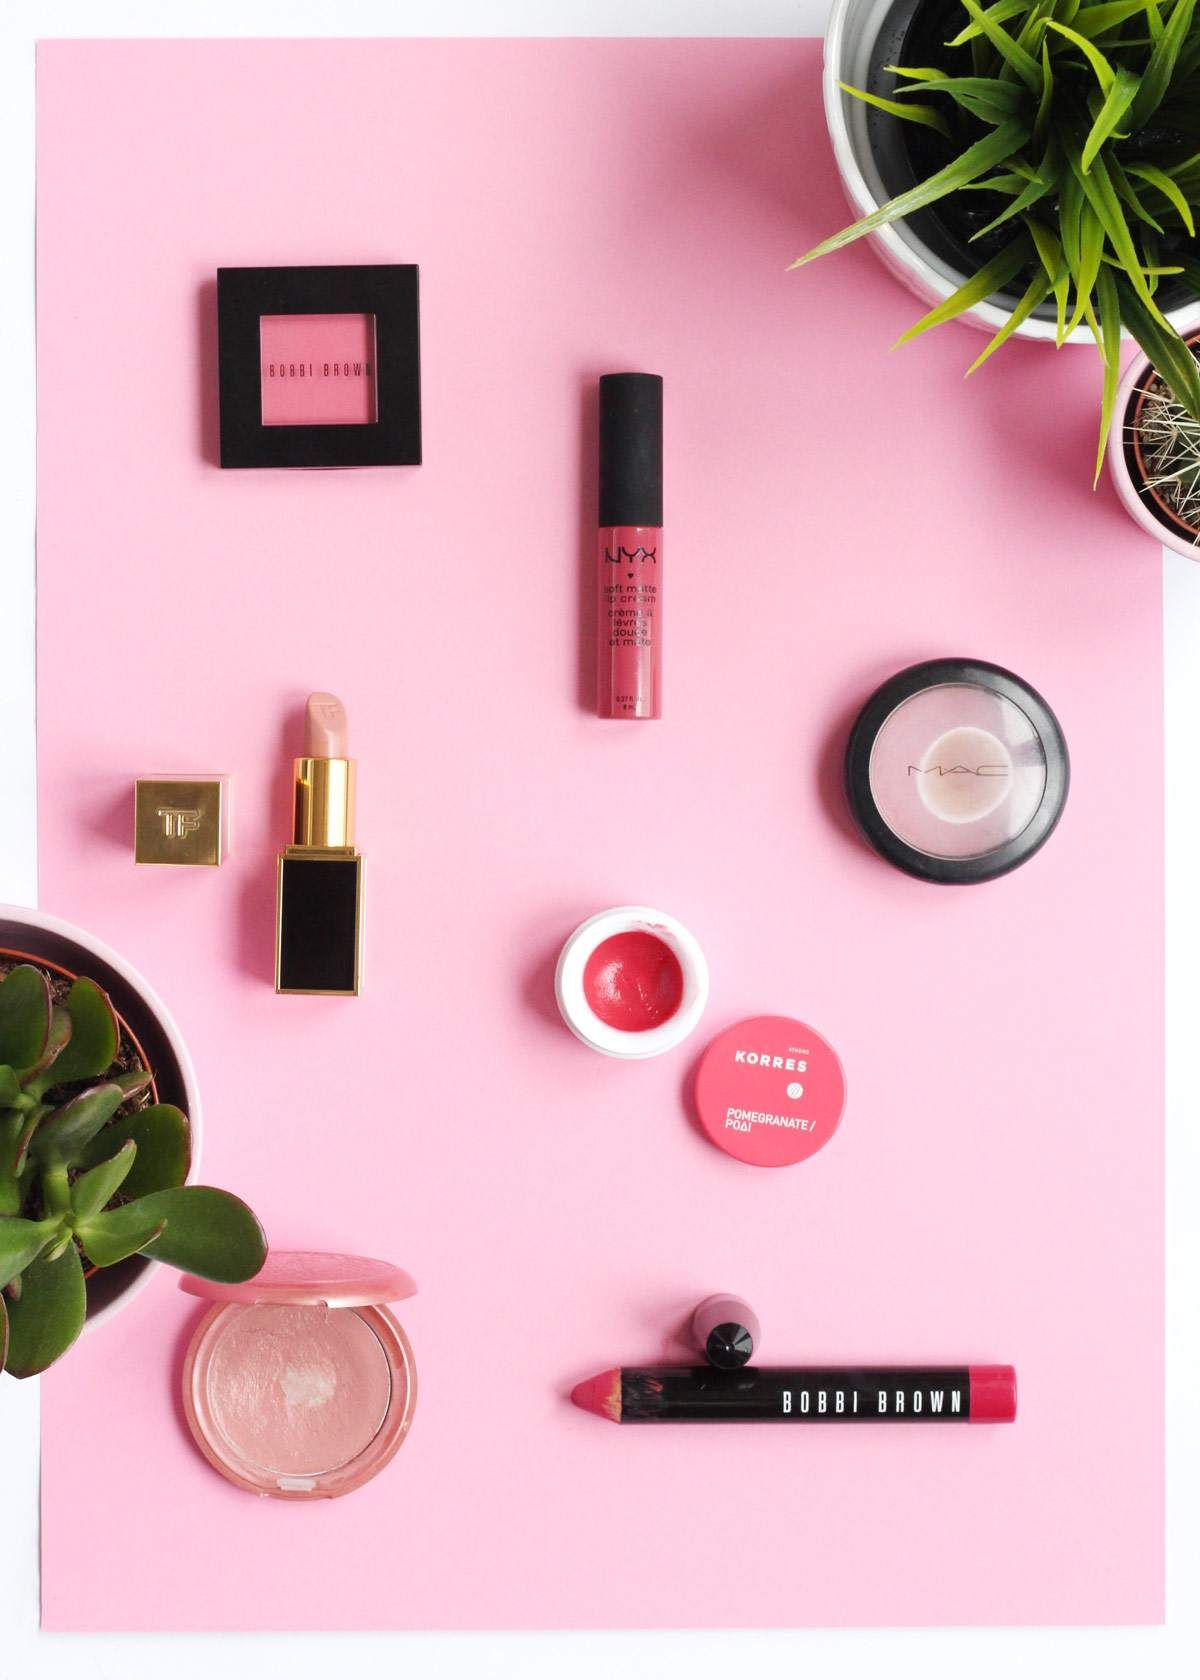 Think Pink | My Top Pink Lipsticks and Blush - my spring makeup picks ft bobbi brown, NYX, tom ford, korres, MAC cosmetics and stila - The Lovecats Inc